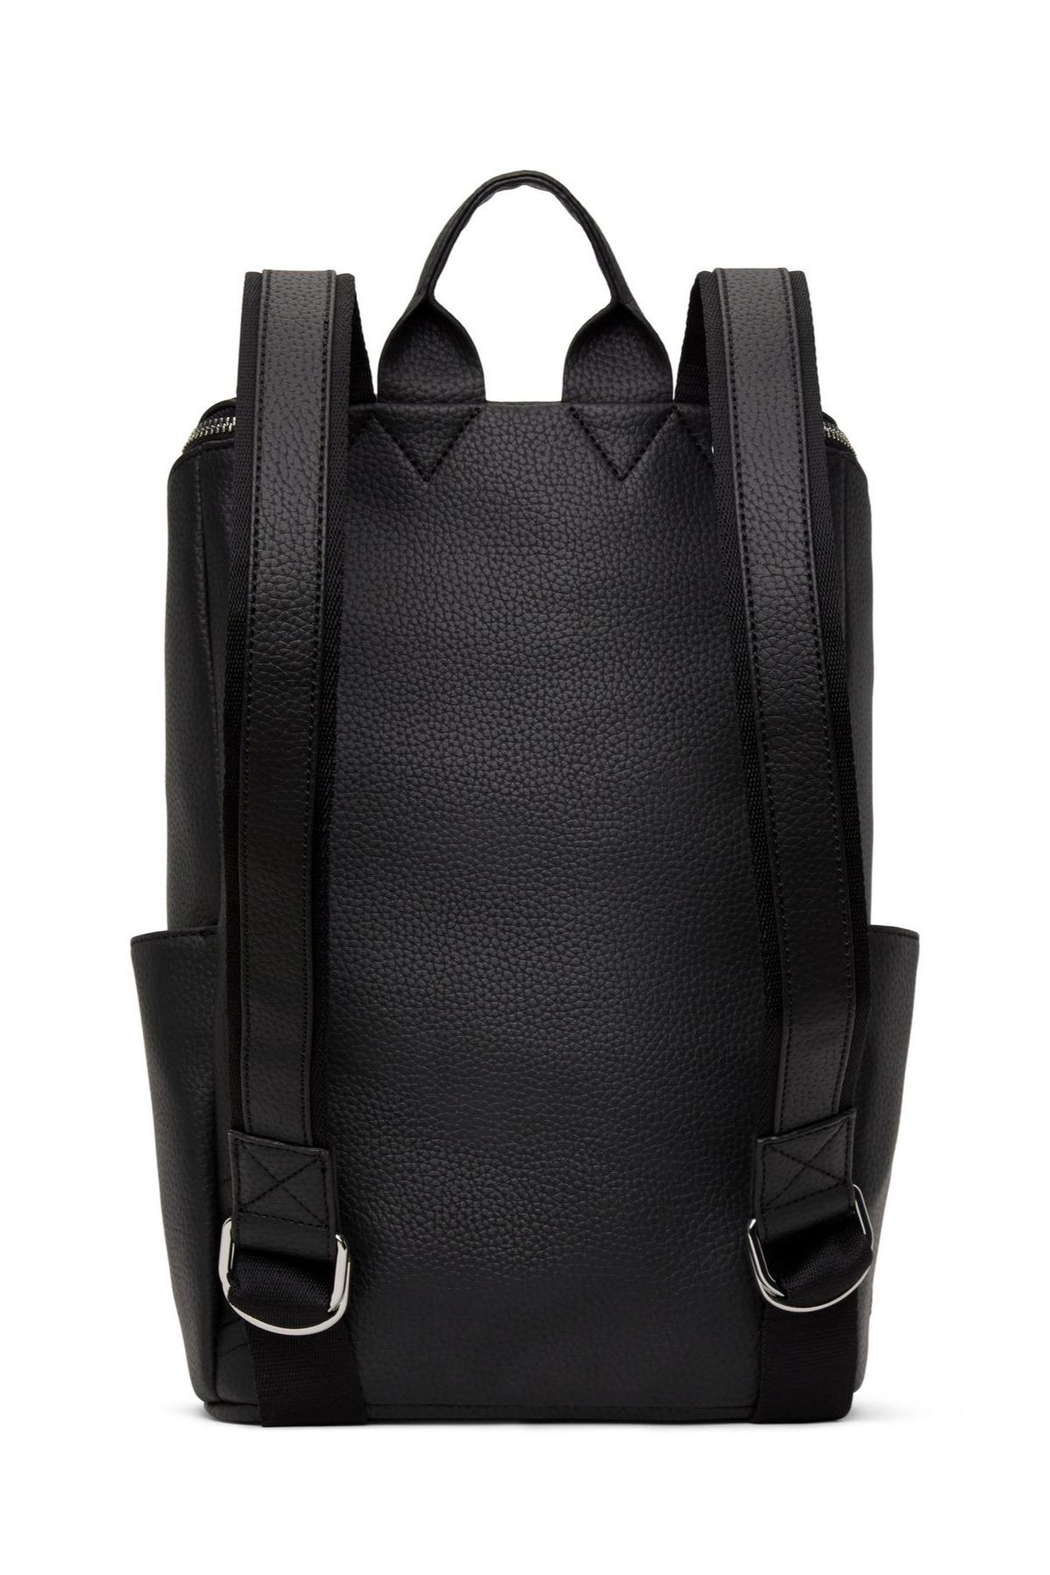 Matt & Nat Brave Backpack - Purity Collection - Side Cropped Image